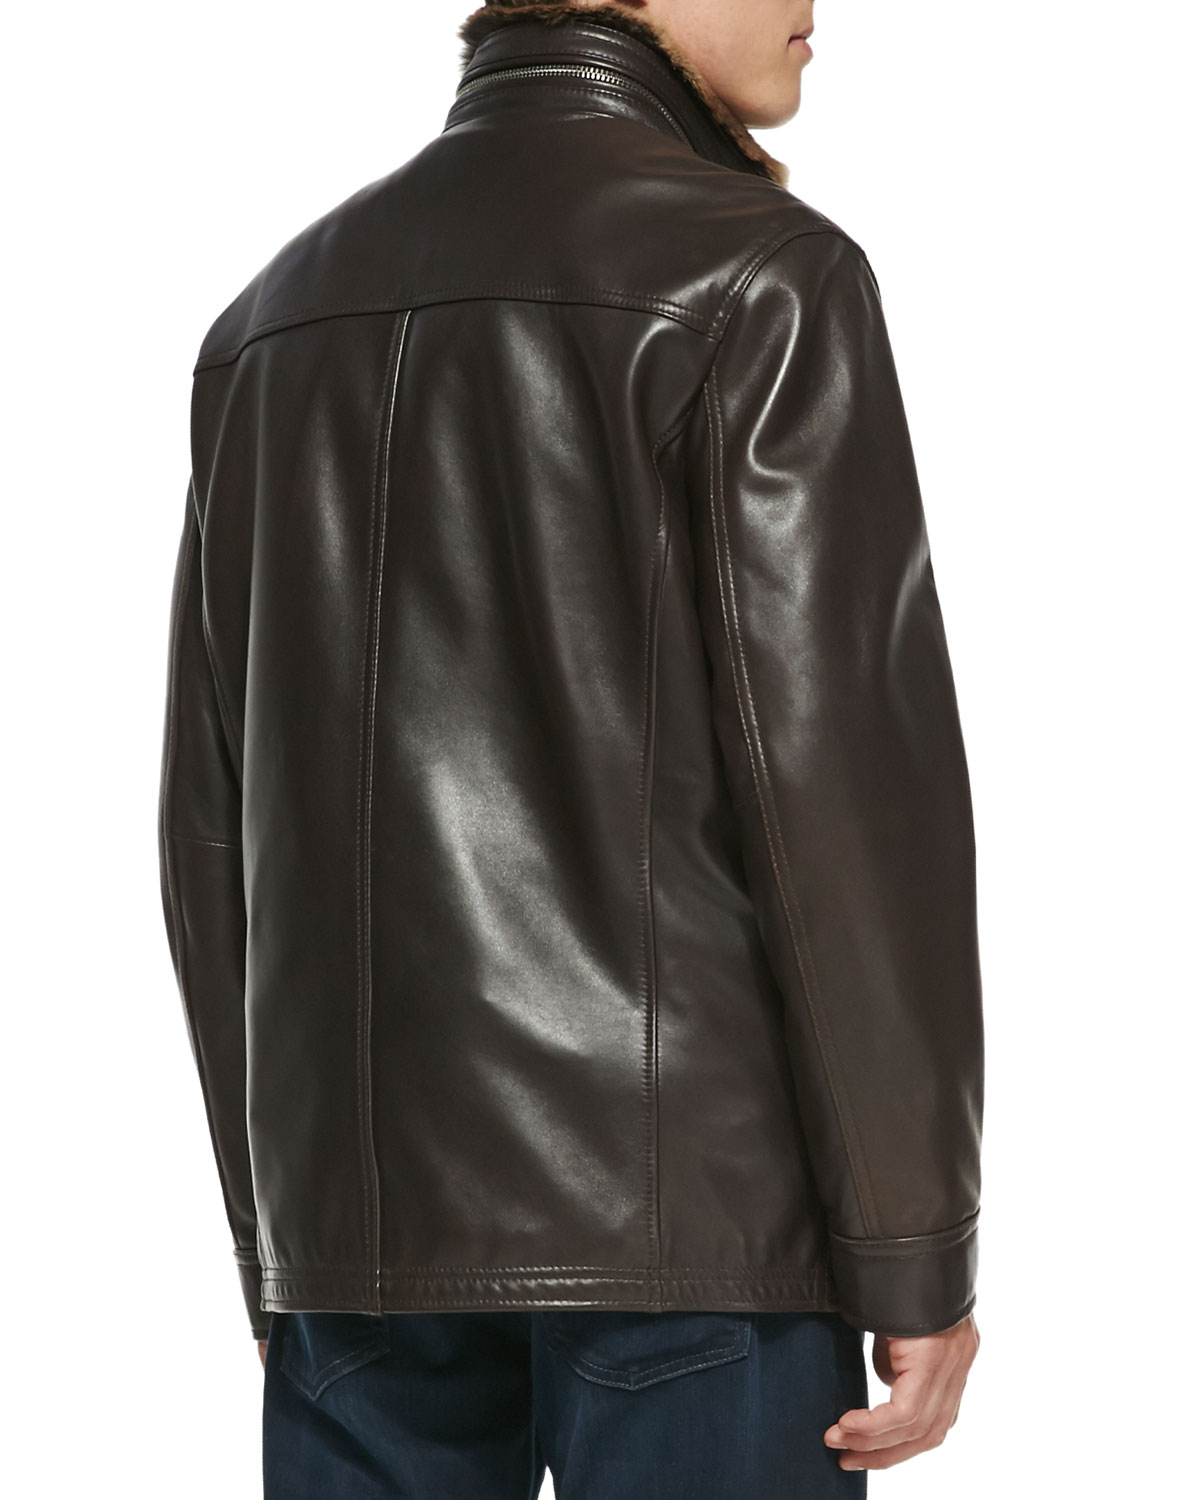 Andrew Marc Fur Lined Leather Car Coat In Brown For Men Lyst